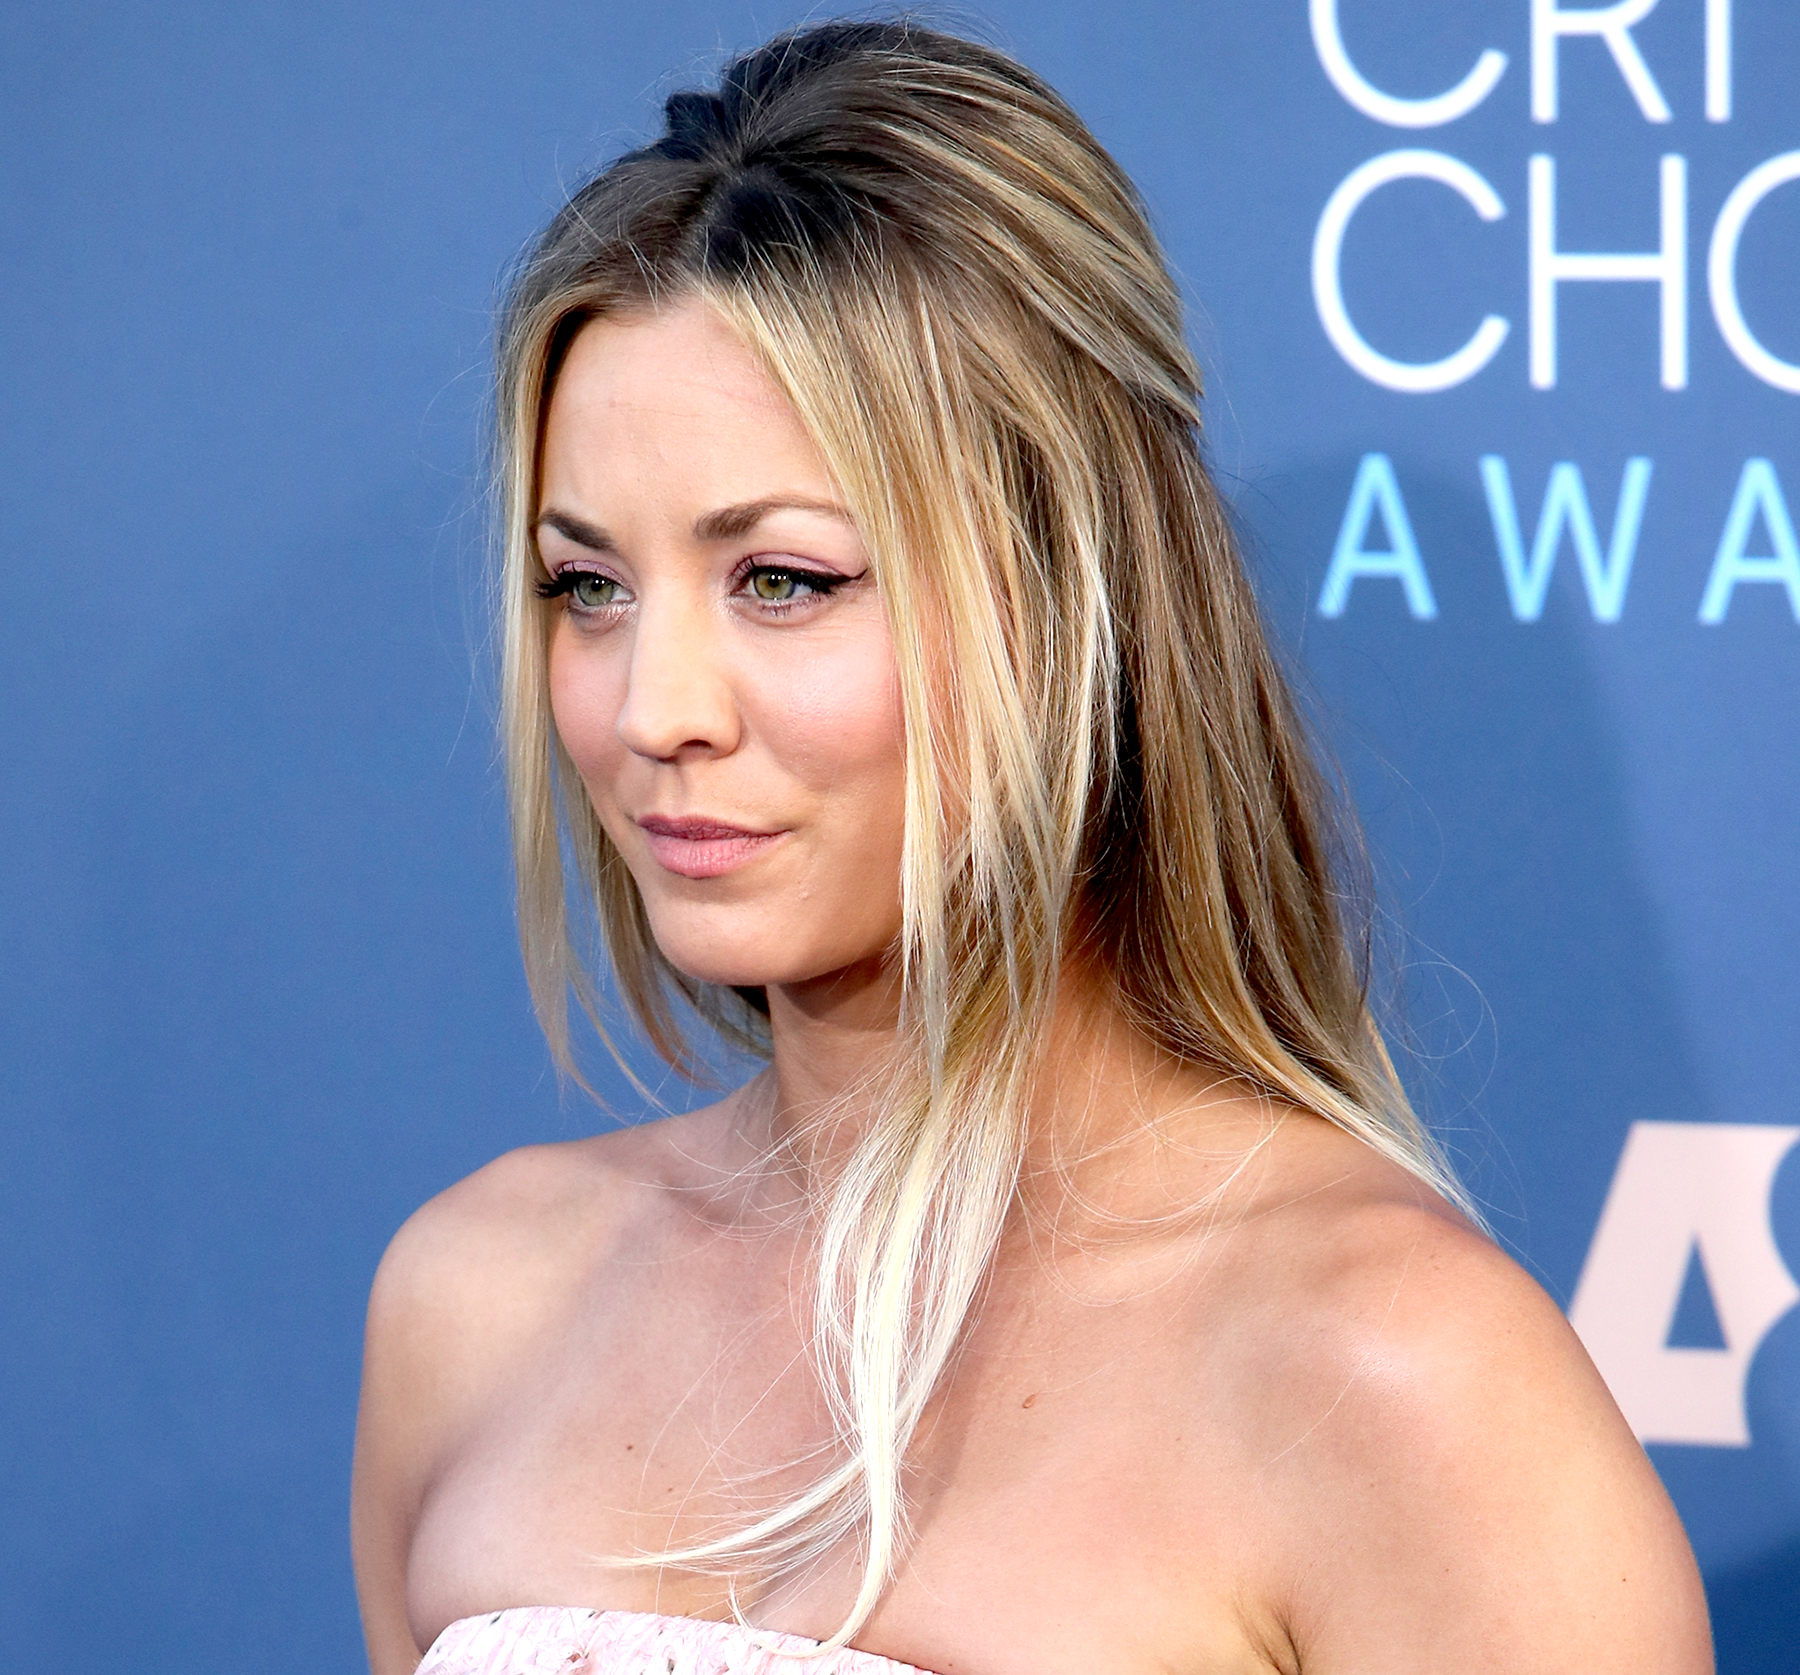 Kaley Cuoco attends the 22nd Annual Critics' Choice Awards at Barker Hangar on December 11, 2016 in Santa Monica, California.